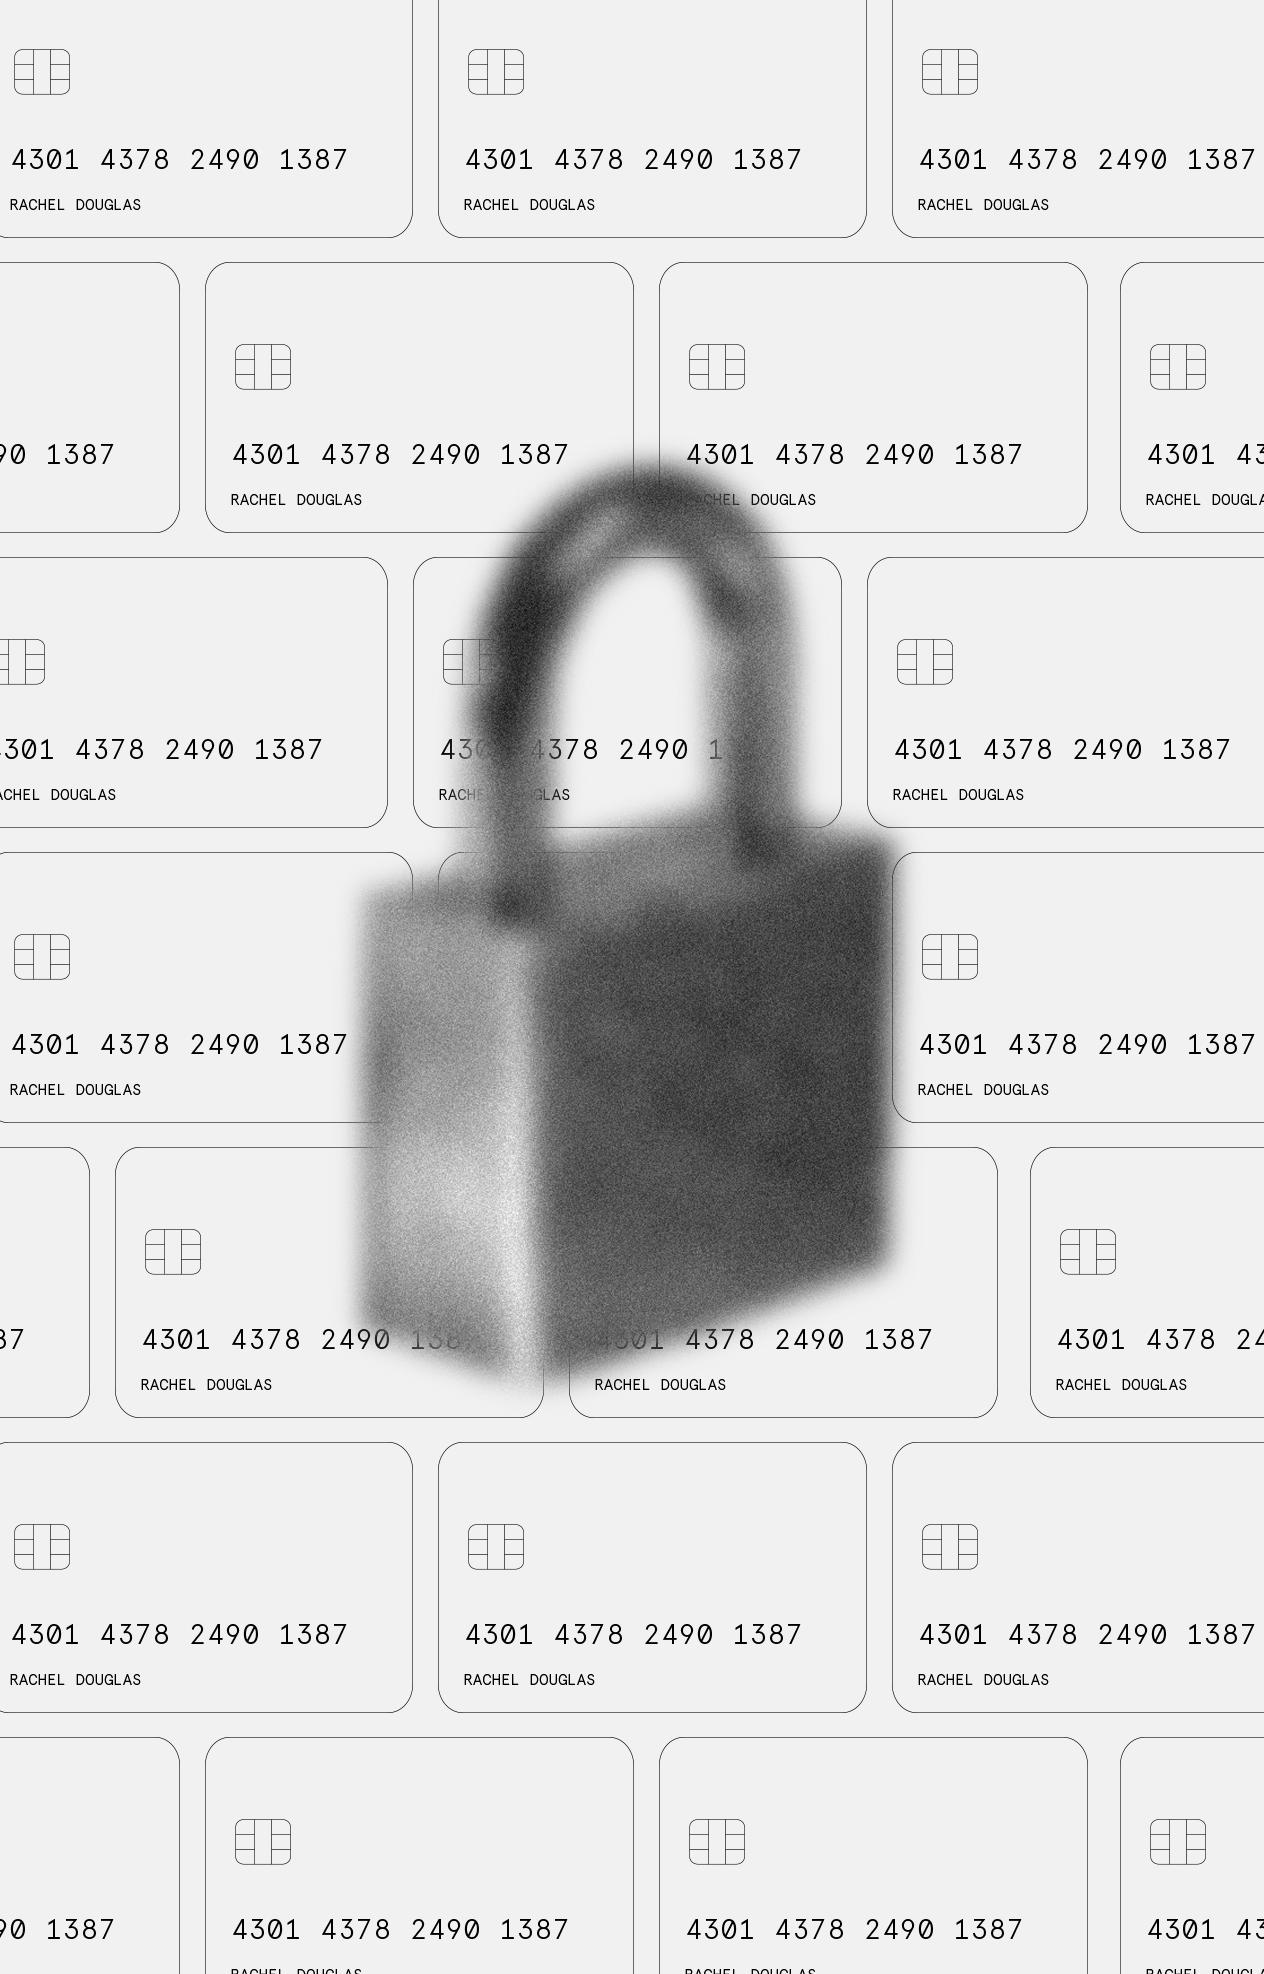 Let's Talk About Security: 8 Tips to Keep Your Credit and Debit Card Information Safe